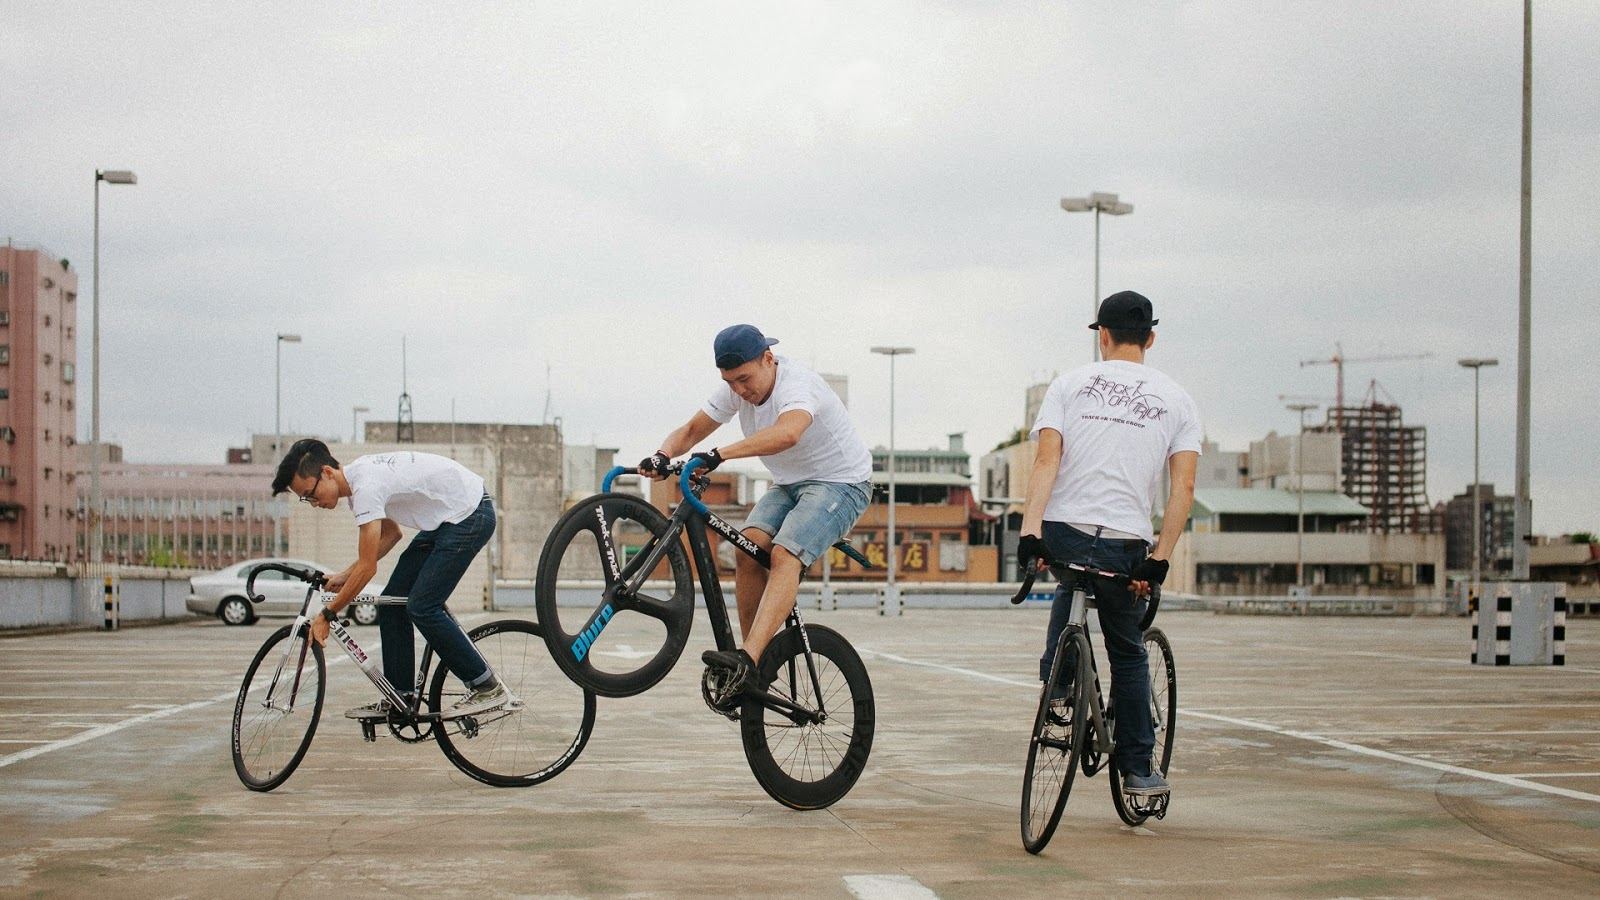 #FixieGroup | Track or Trick Team from Taiwan